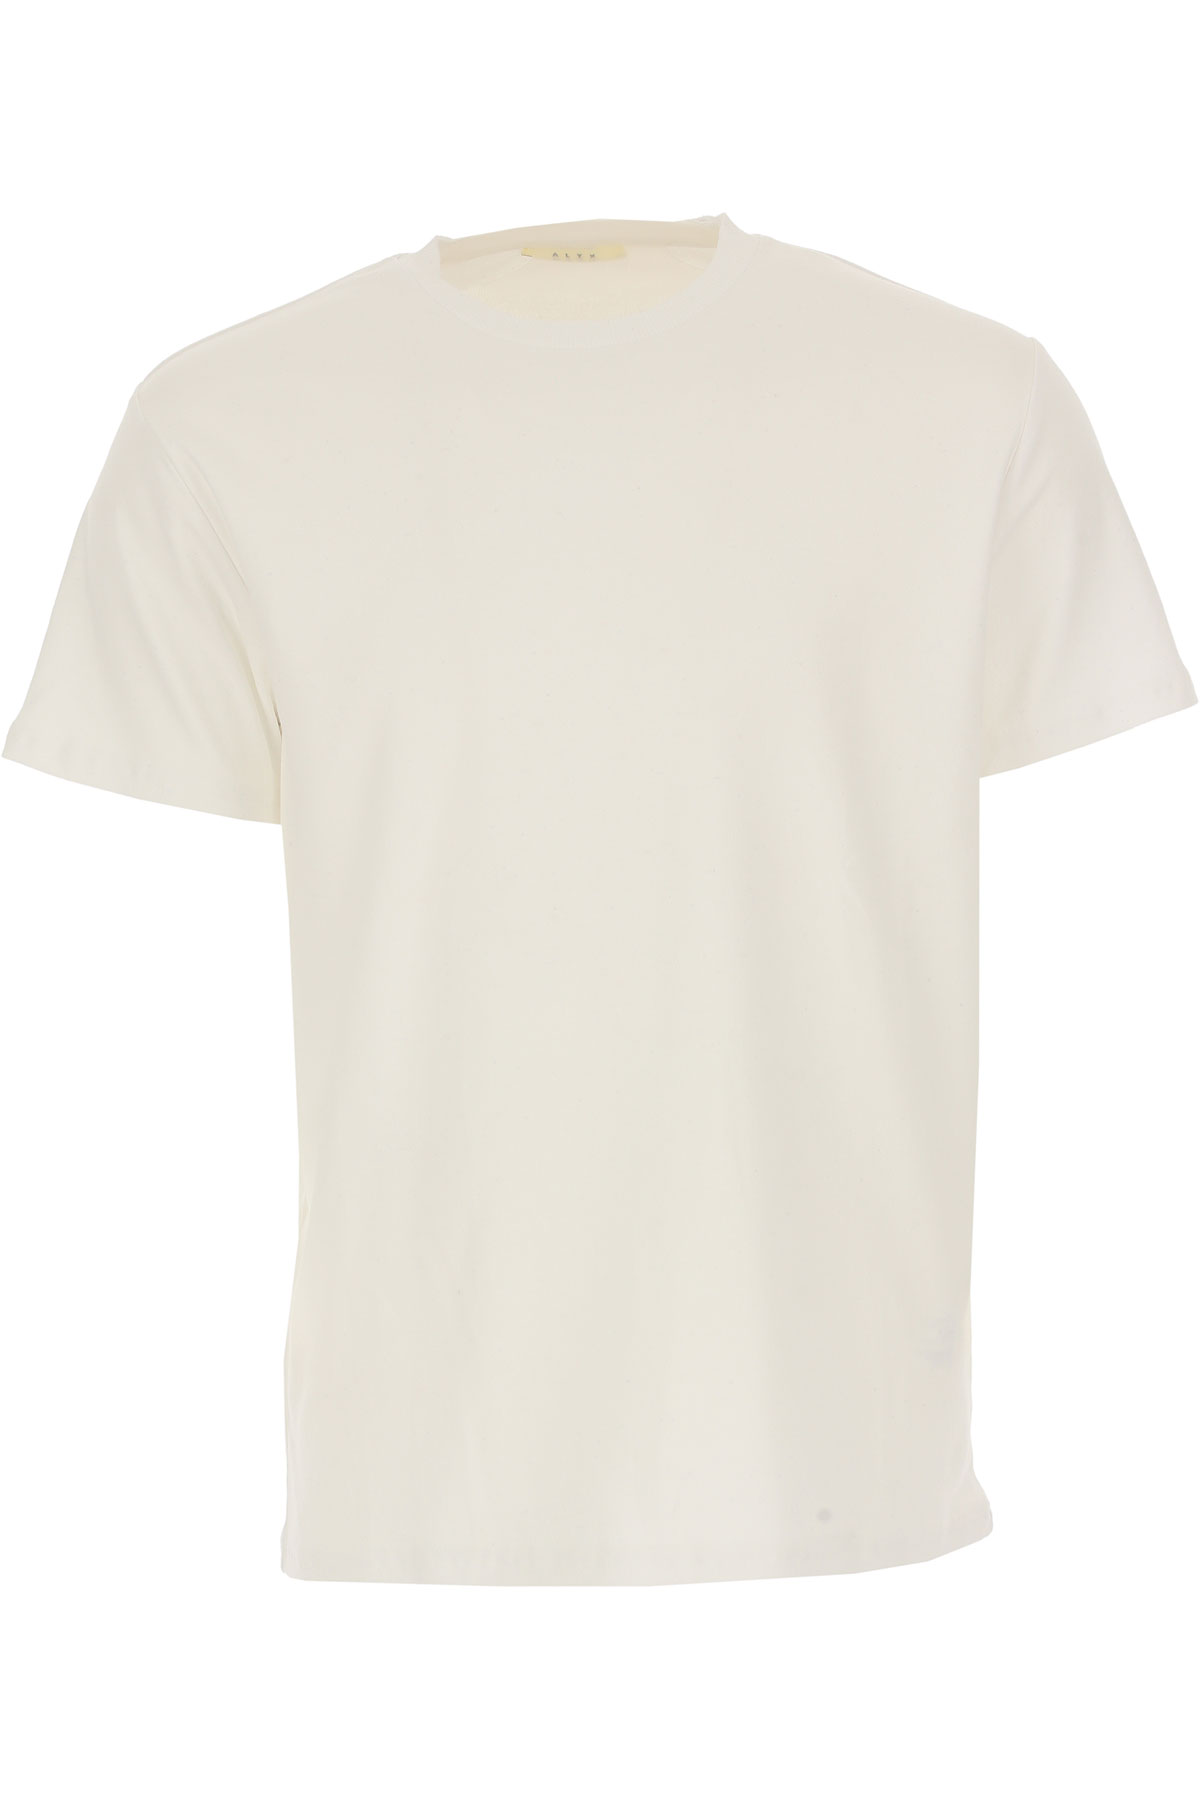 ALYX T-Shirt for Men On Sale in Outlet, White, Cotton, 2019, S XS